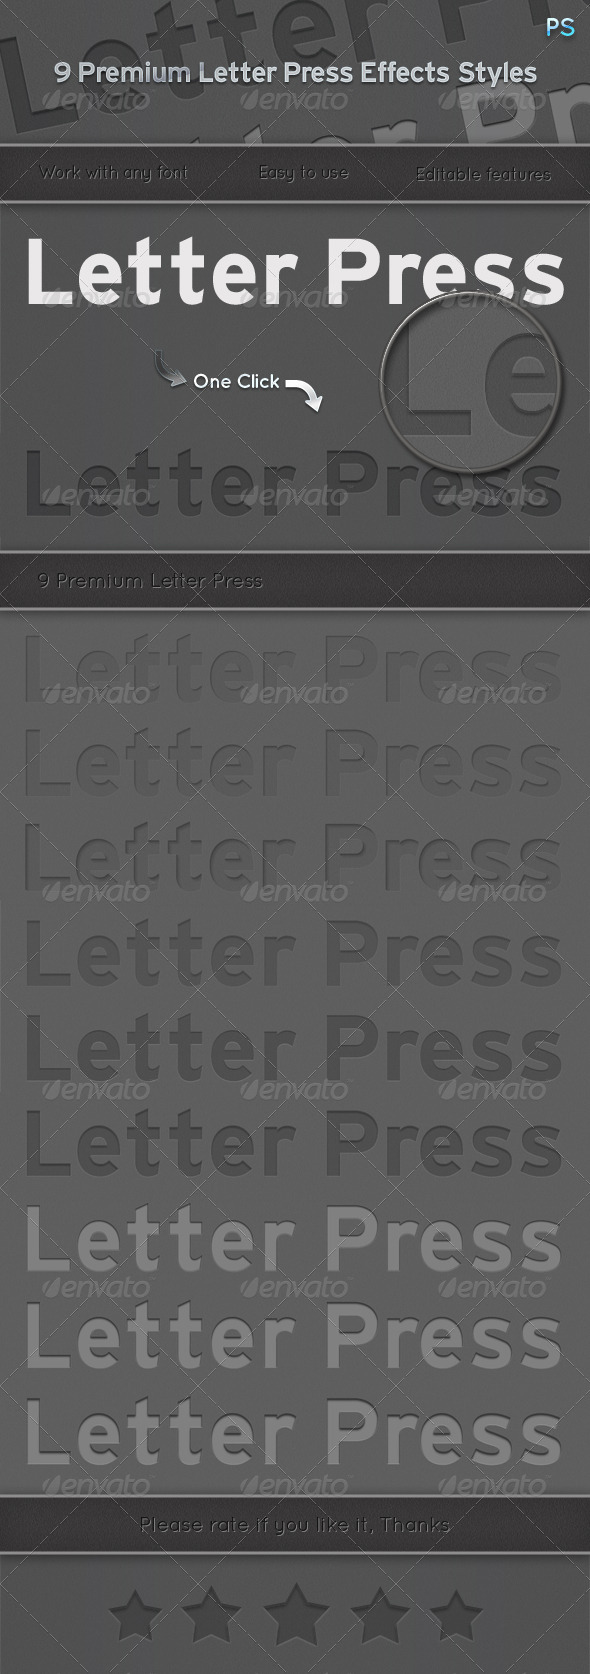 GraphicRiver 9 Premium Letter Press Effects Styles 6502215